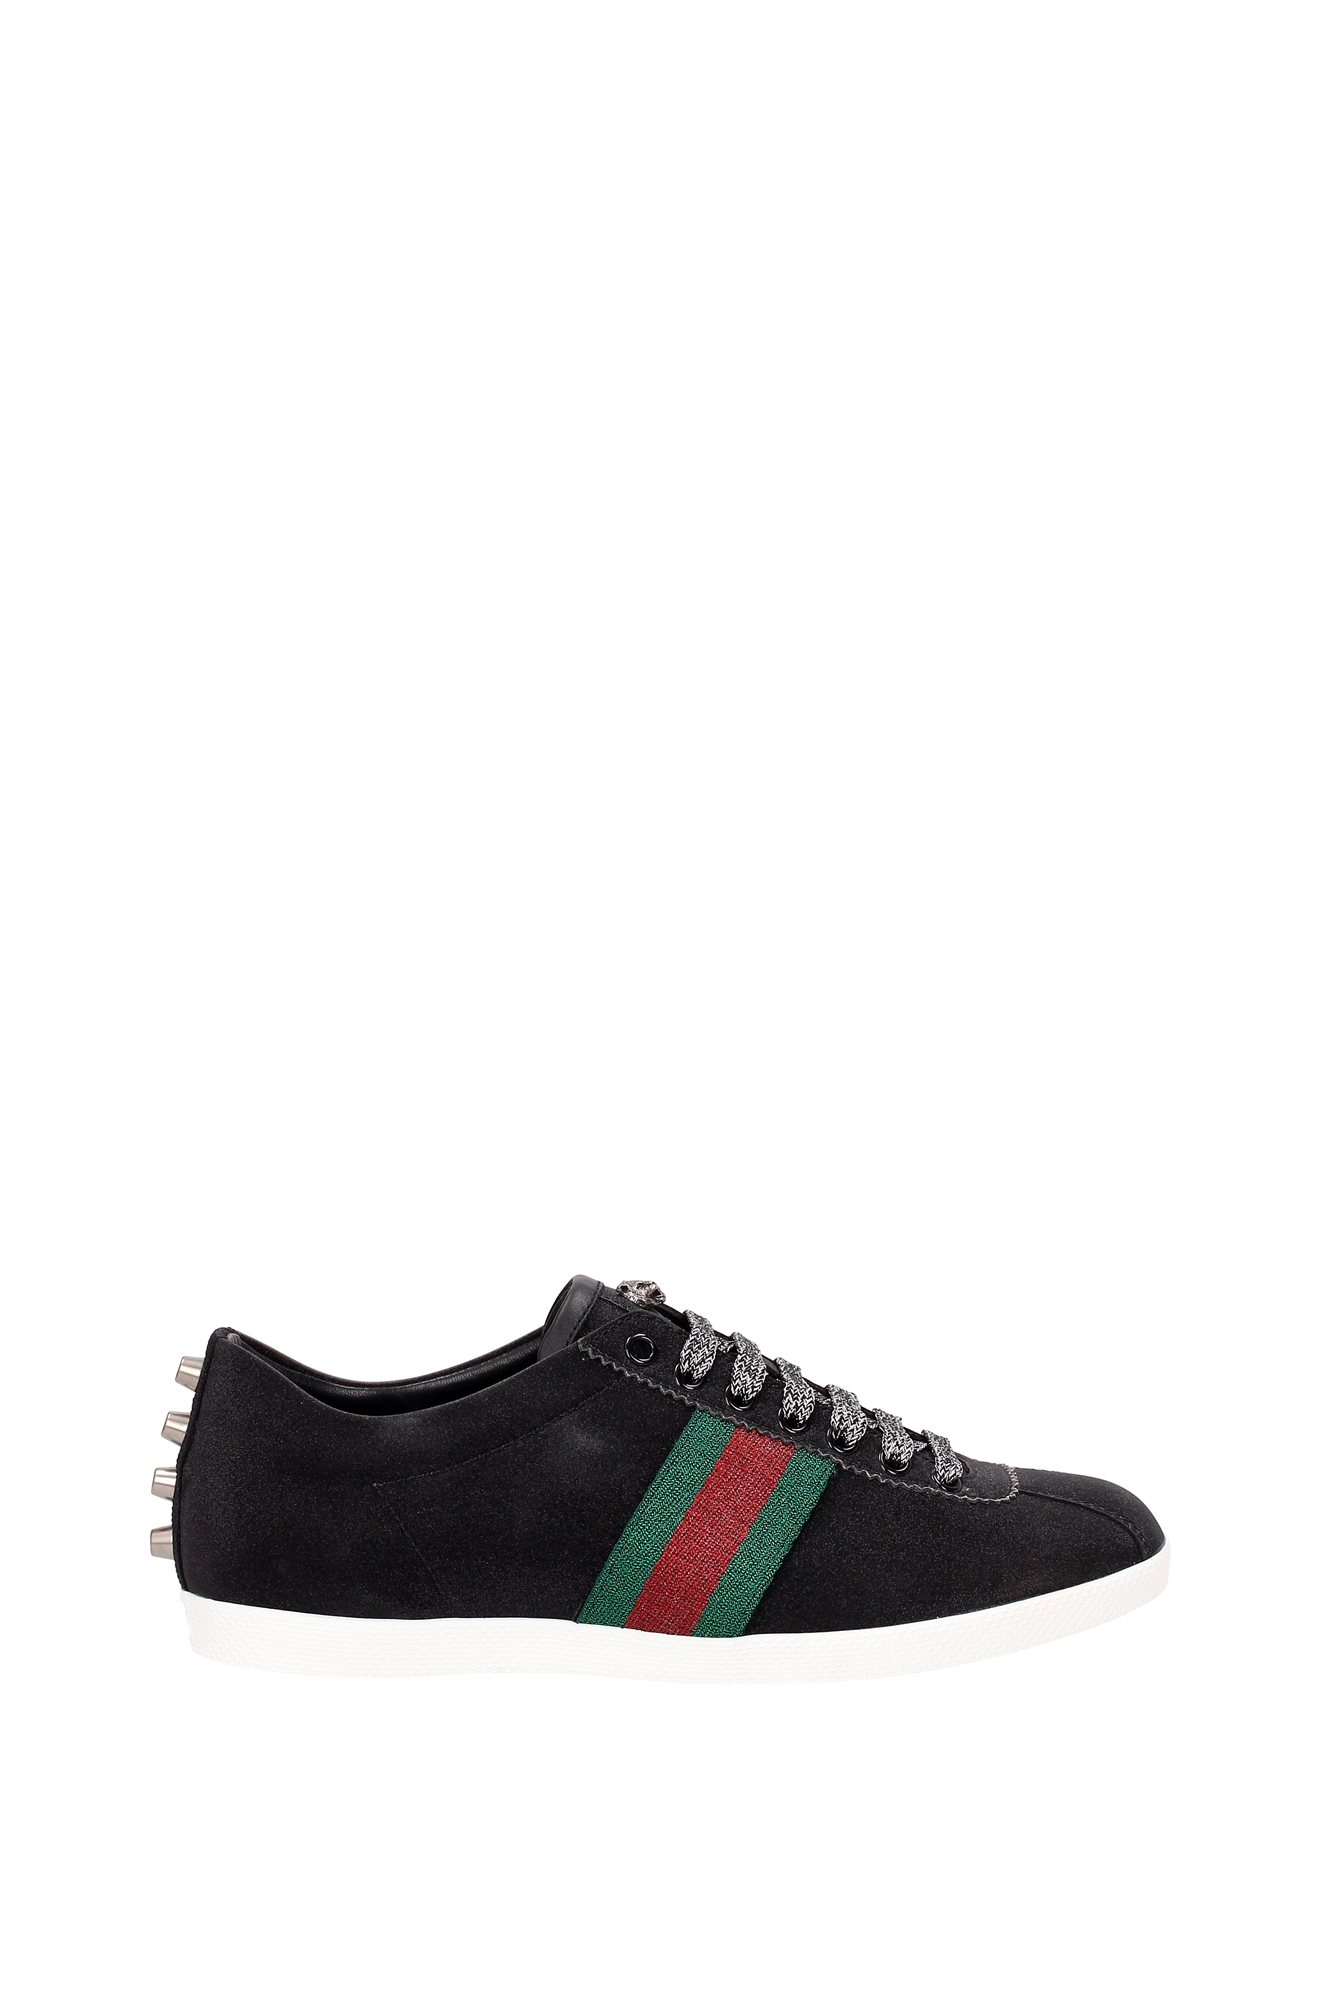 sneakers gucci men glitter black 419712kw0401074 ebay